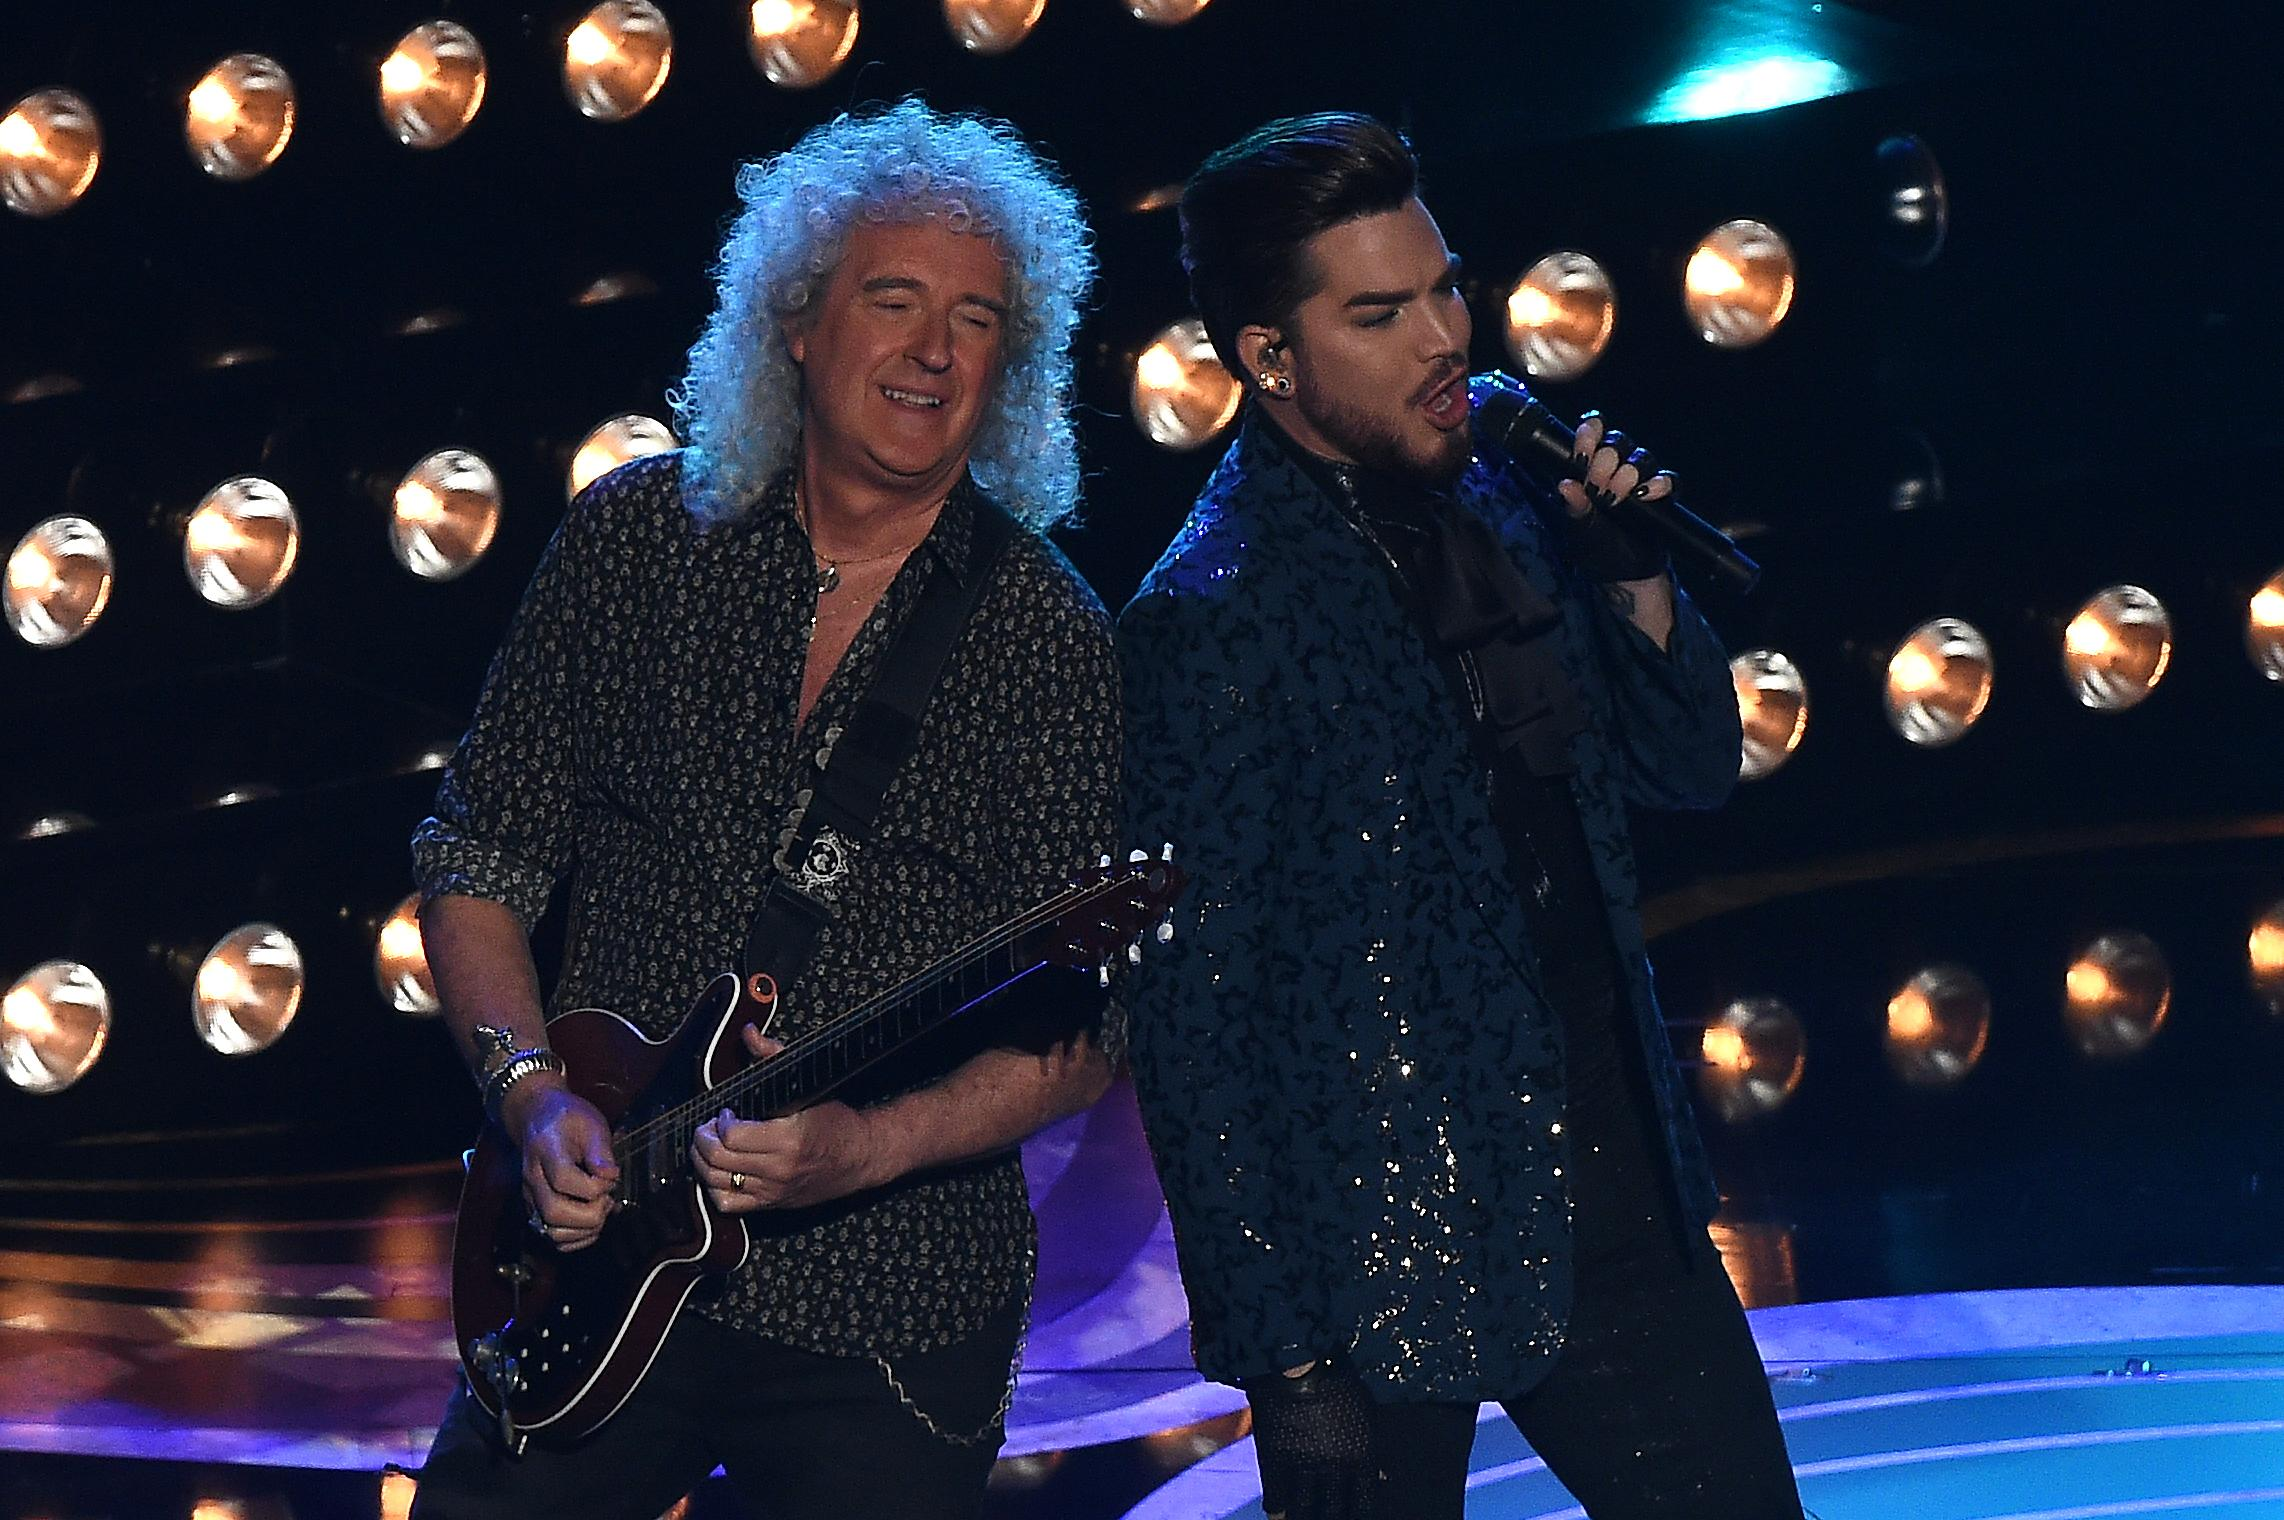 Member of British rock band Queen Brian May and US singer-songwriter Adam Lambert performs during the 91st Annual Academy Awards at the Dolby Theatre in Hollywood, California on February 24, 2019. (Photo by VALERIE MACON / AFP)        (Photo credit should read VALERIE MACON/AFP/Getty Images)